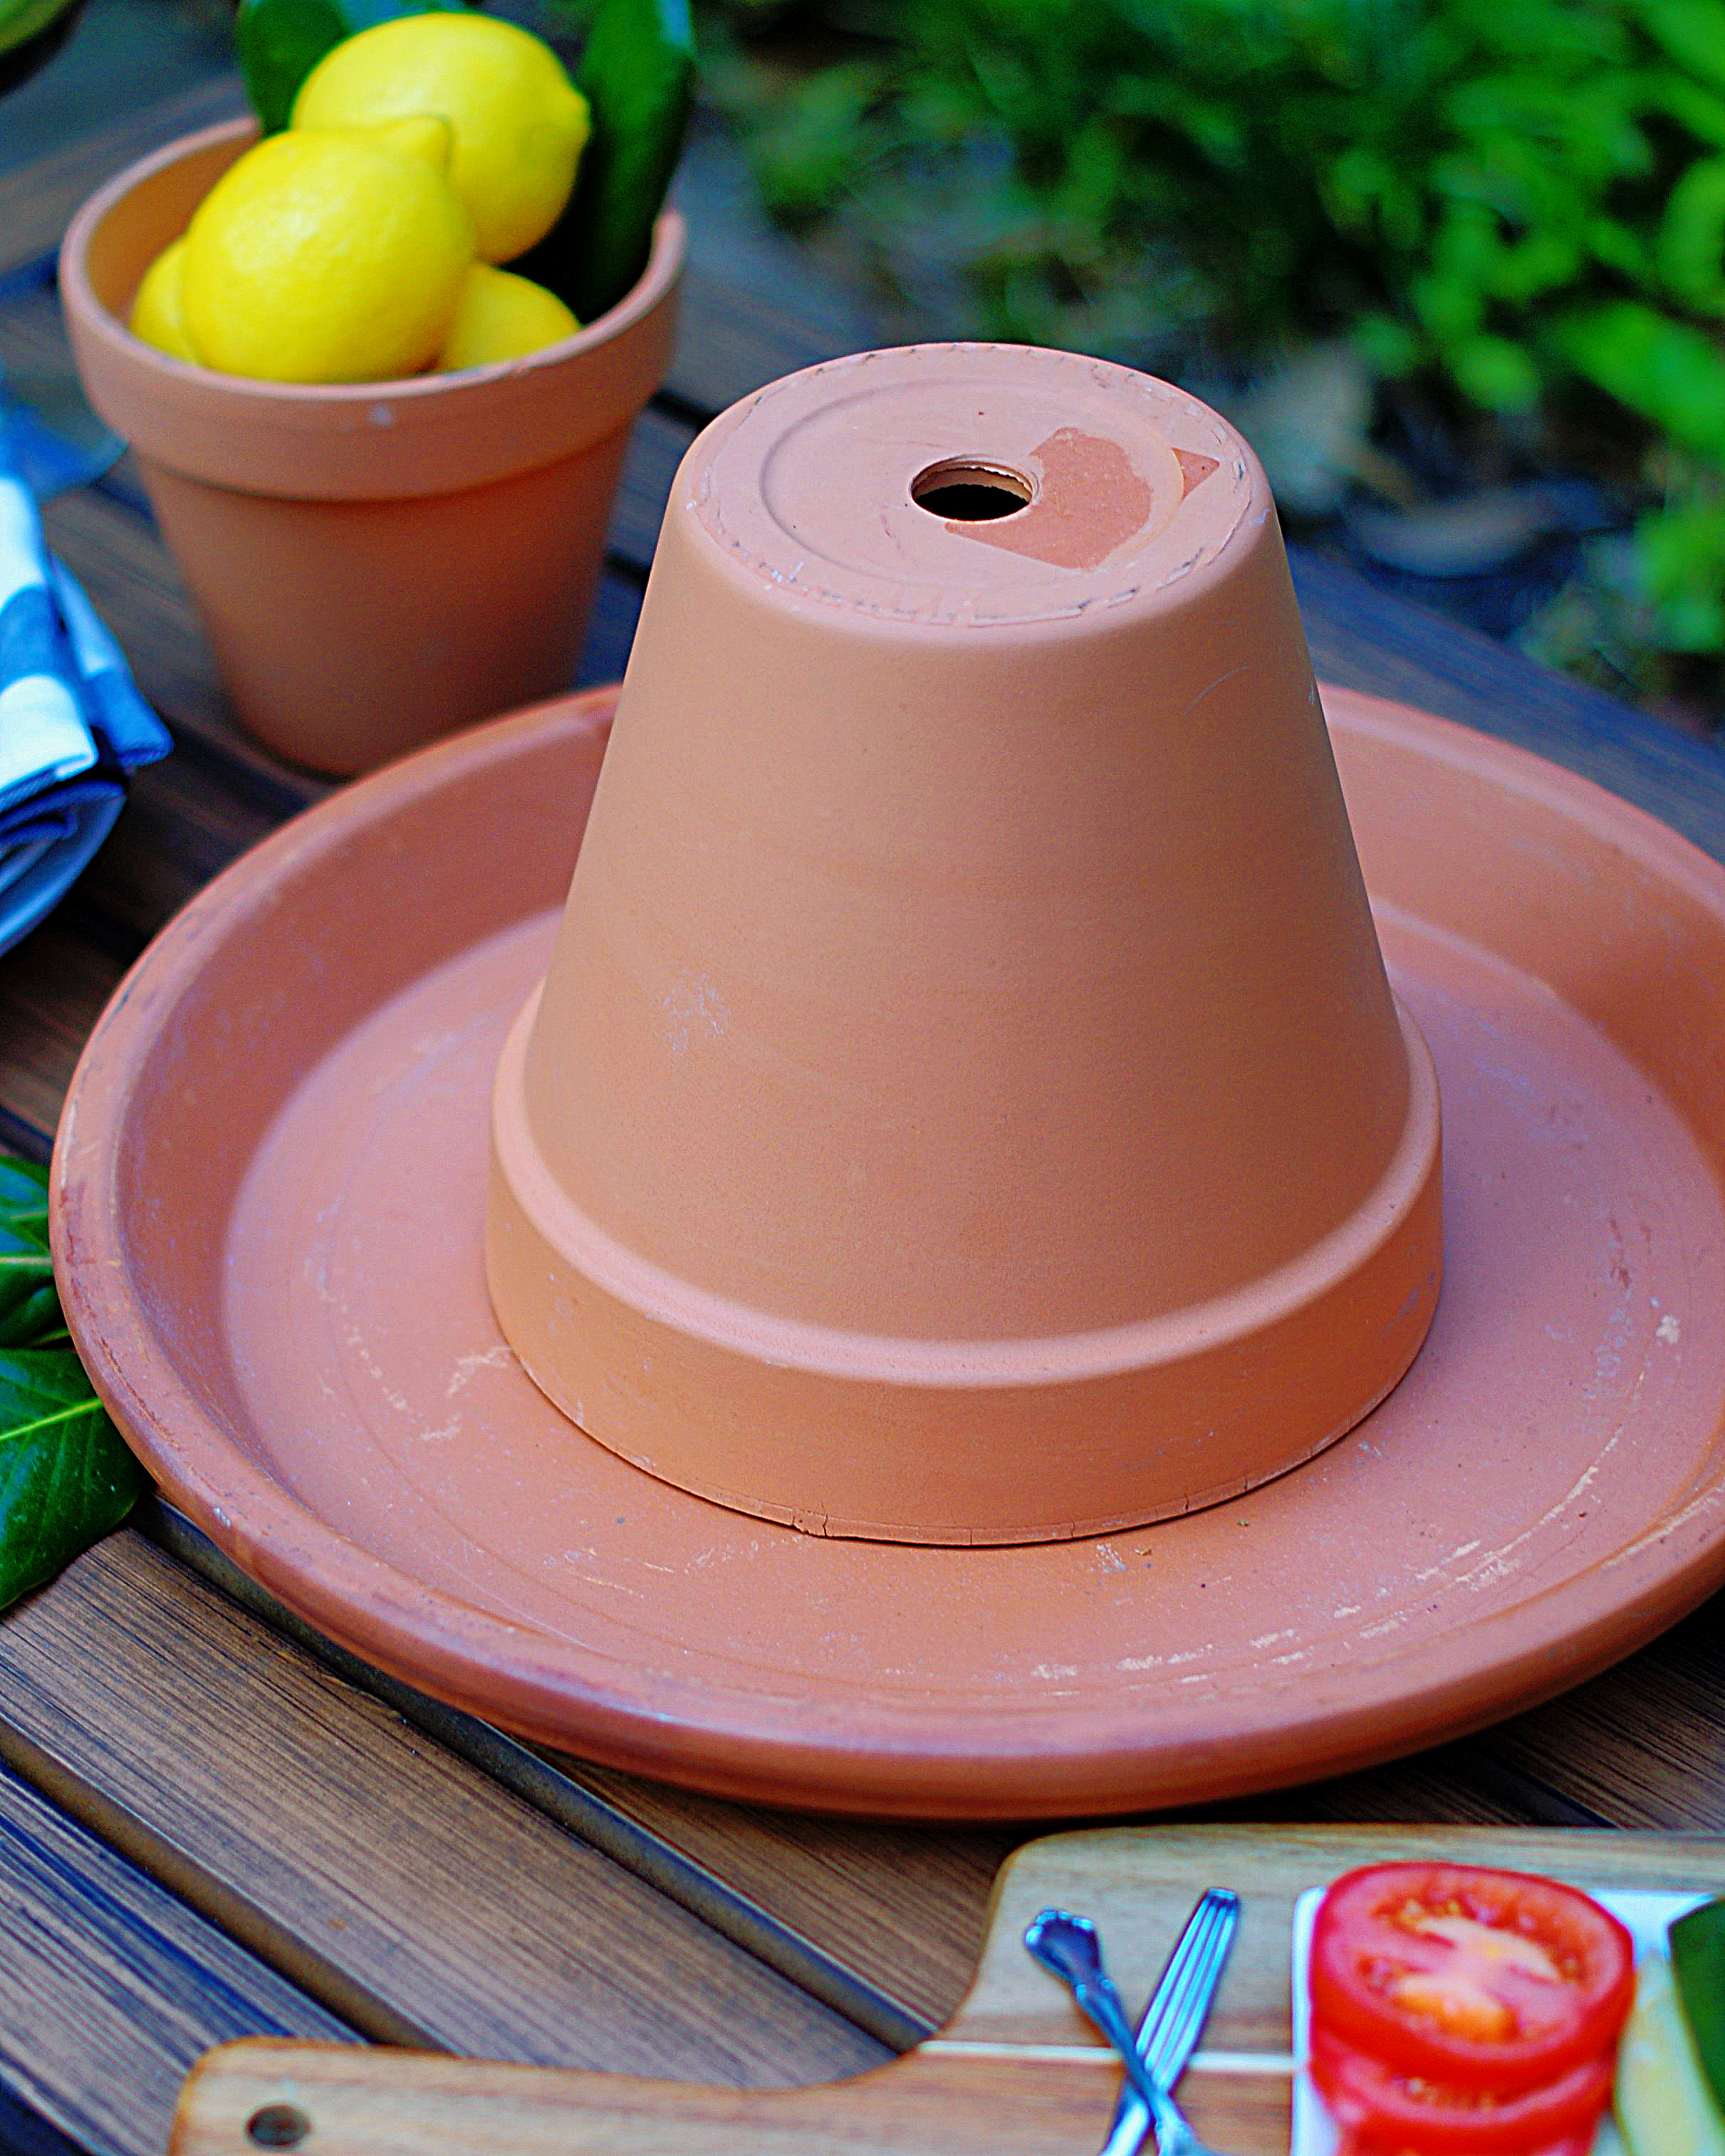 Lemon Centerpiece Step 1 with large terracotta tray and medium pot.